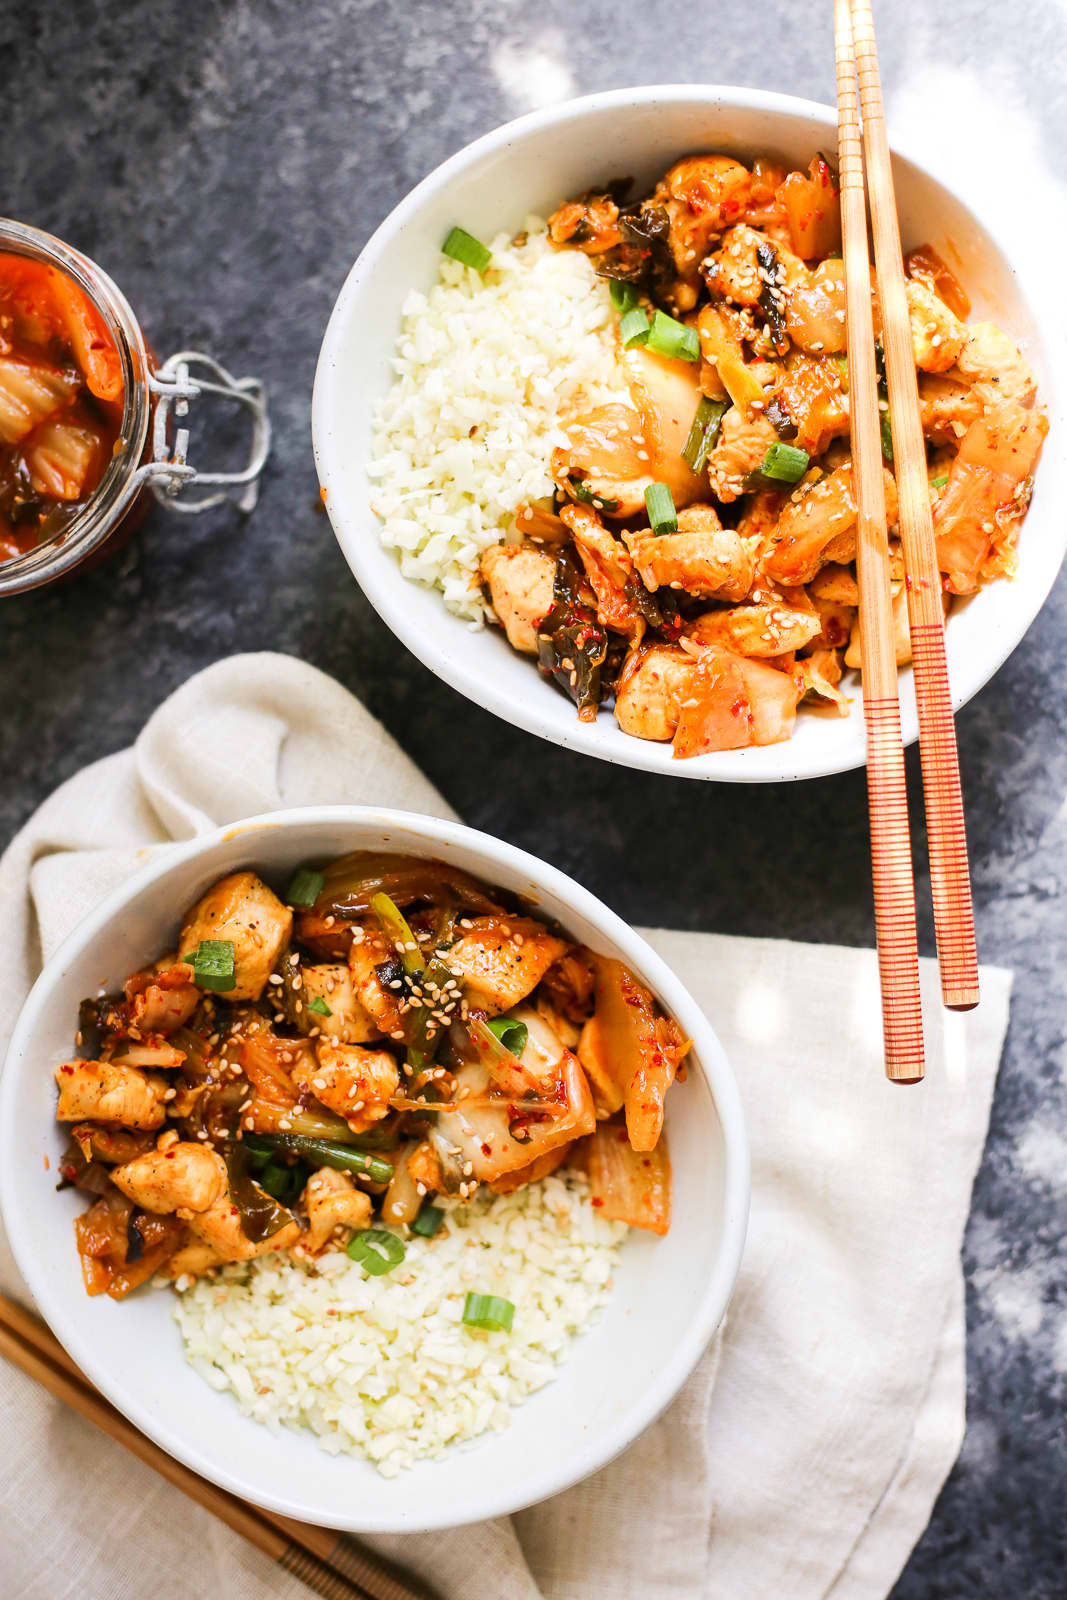 This Easy Chicken Stir-Fry Belongs in Your Dinner Rotation